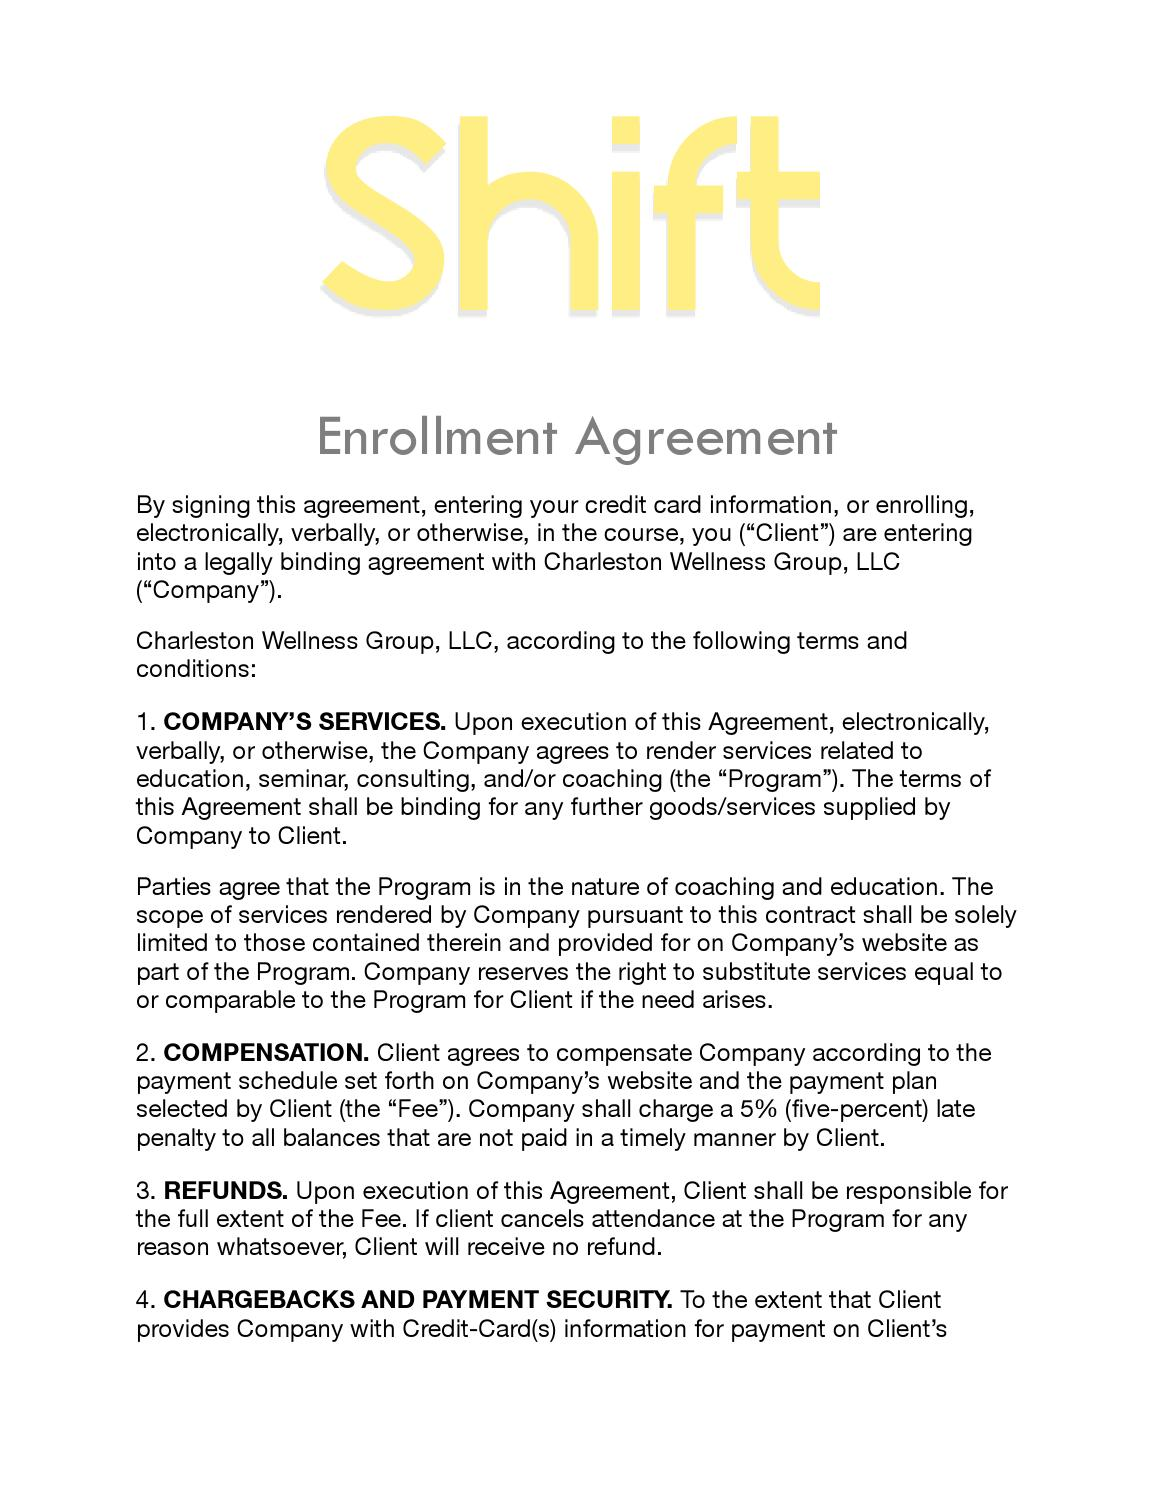 Shift Online Agreement By Lyn Tally Issuu